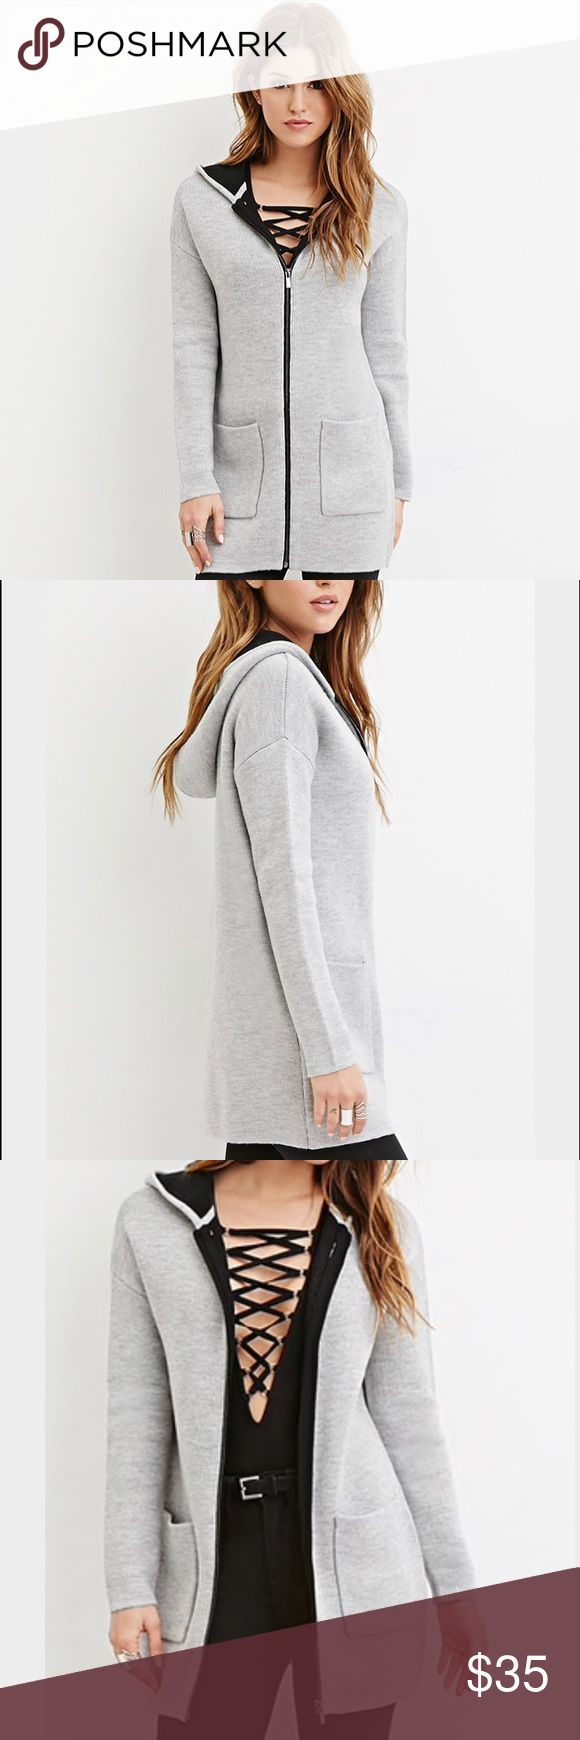 Forever 21 Longline Zip Hoodie 2016 Fall Collection Heather Grey/ Black Women's Hoodie Forever 21 Sweaters